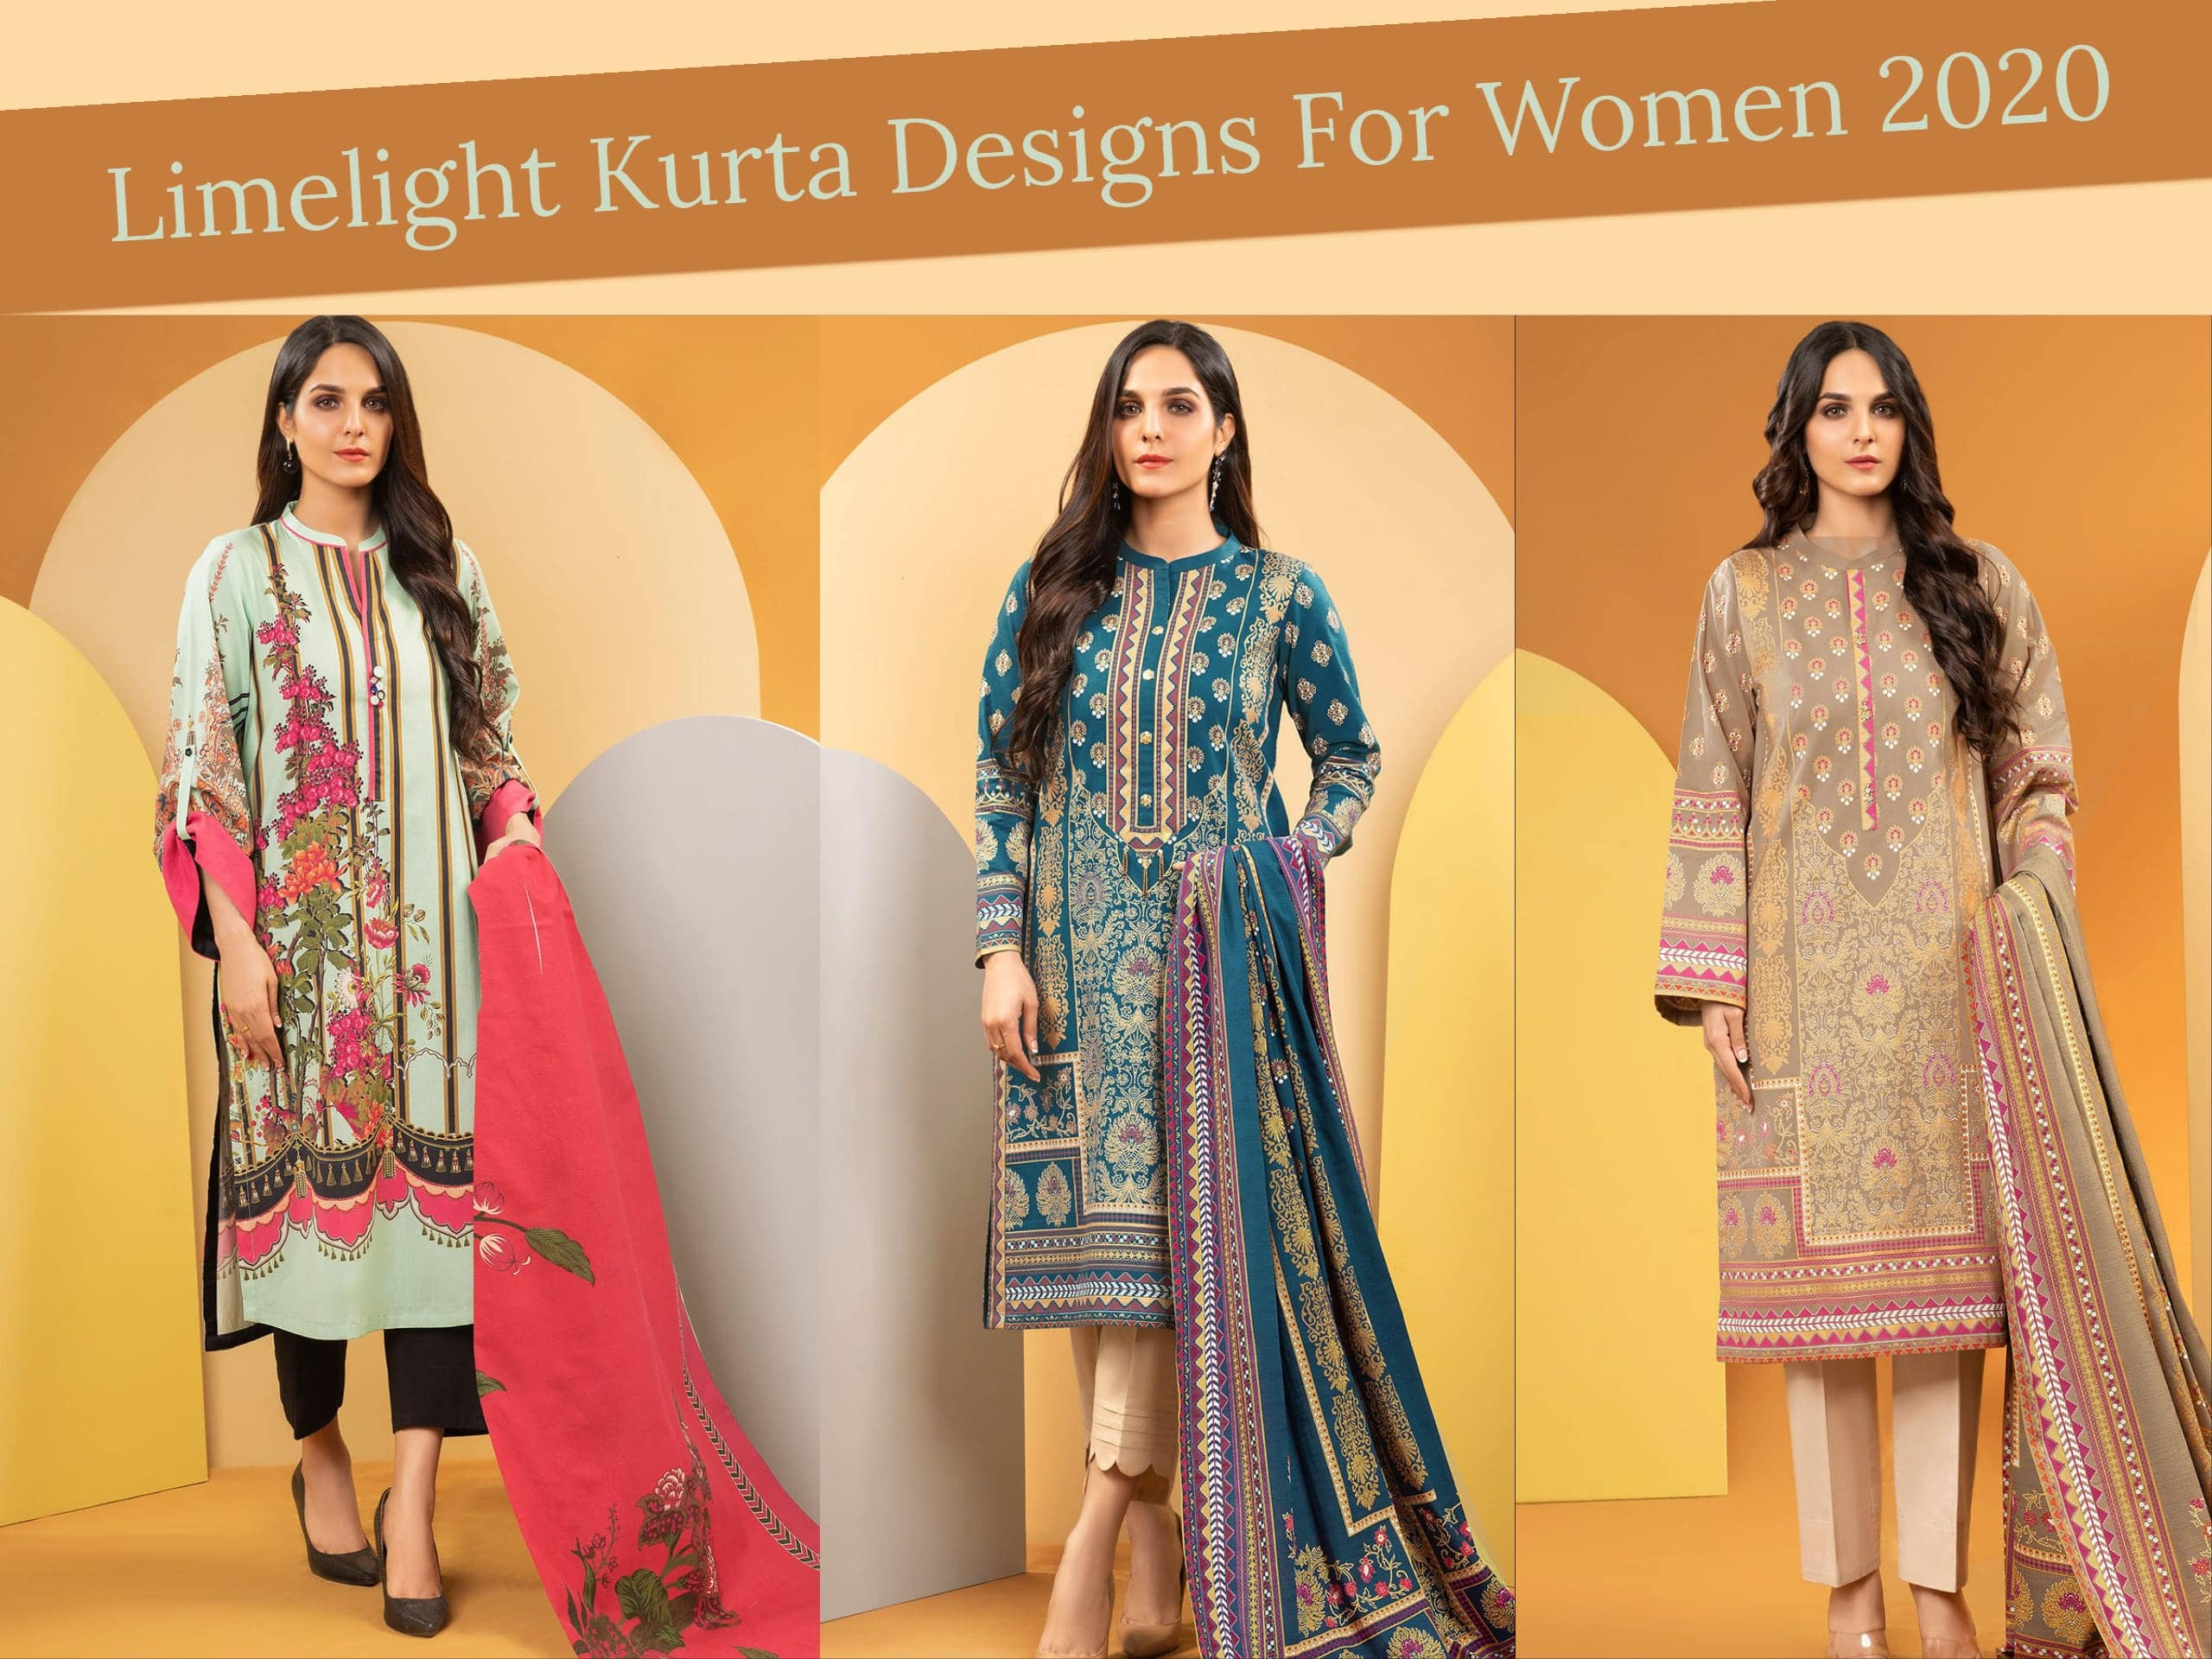 Limelight Unstitched Kurta Designs For Women In 2020